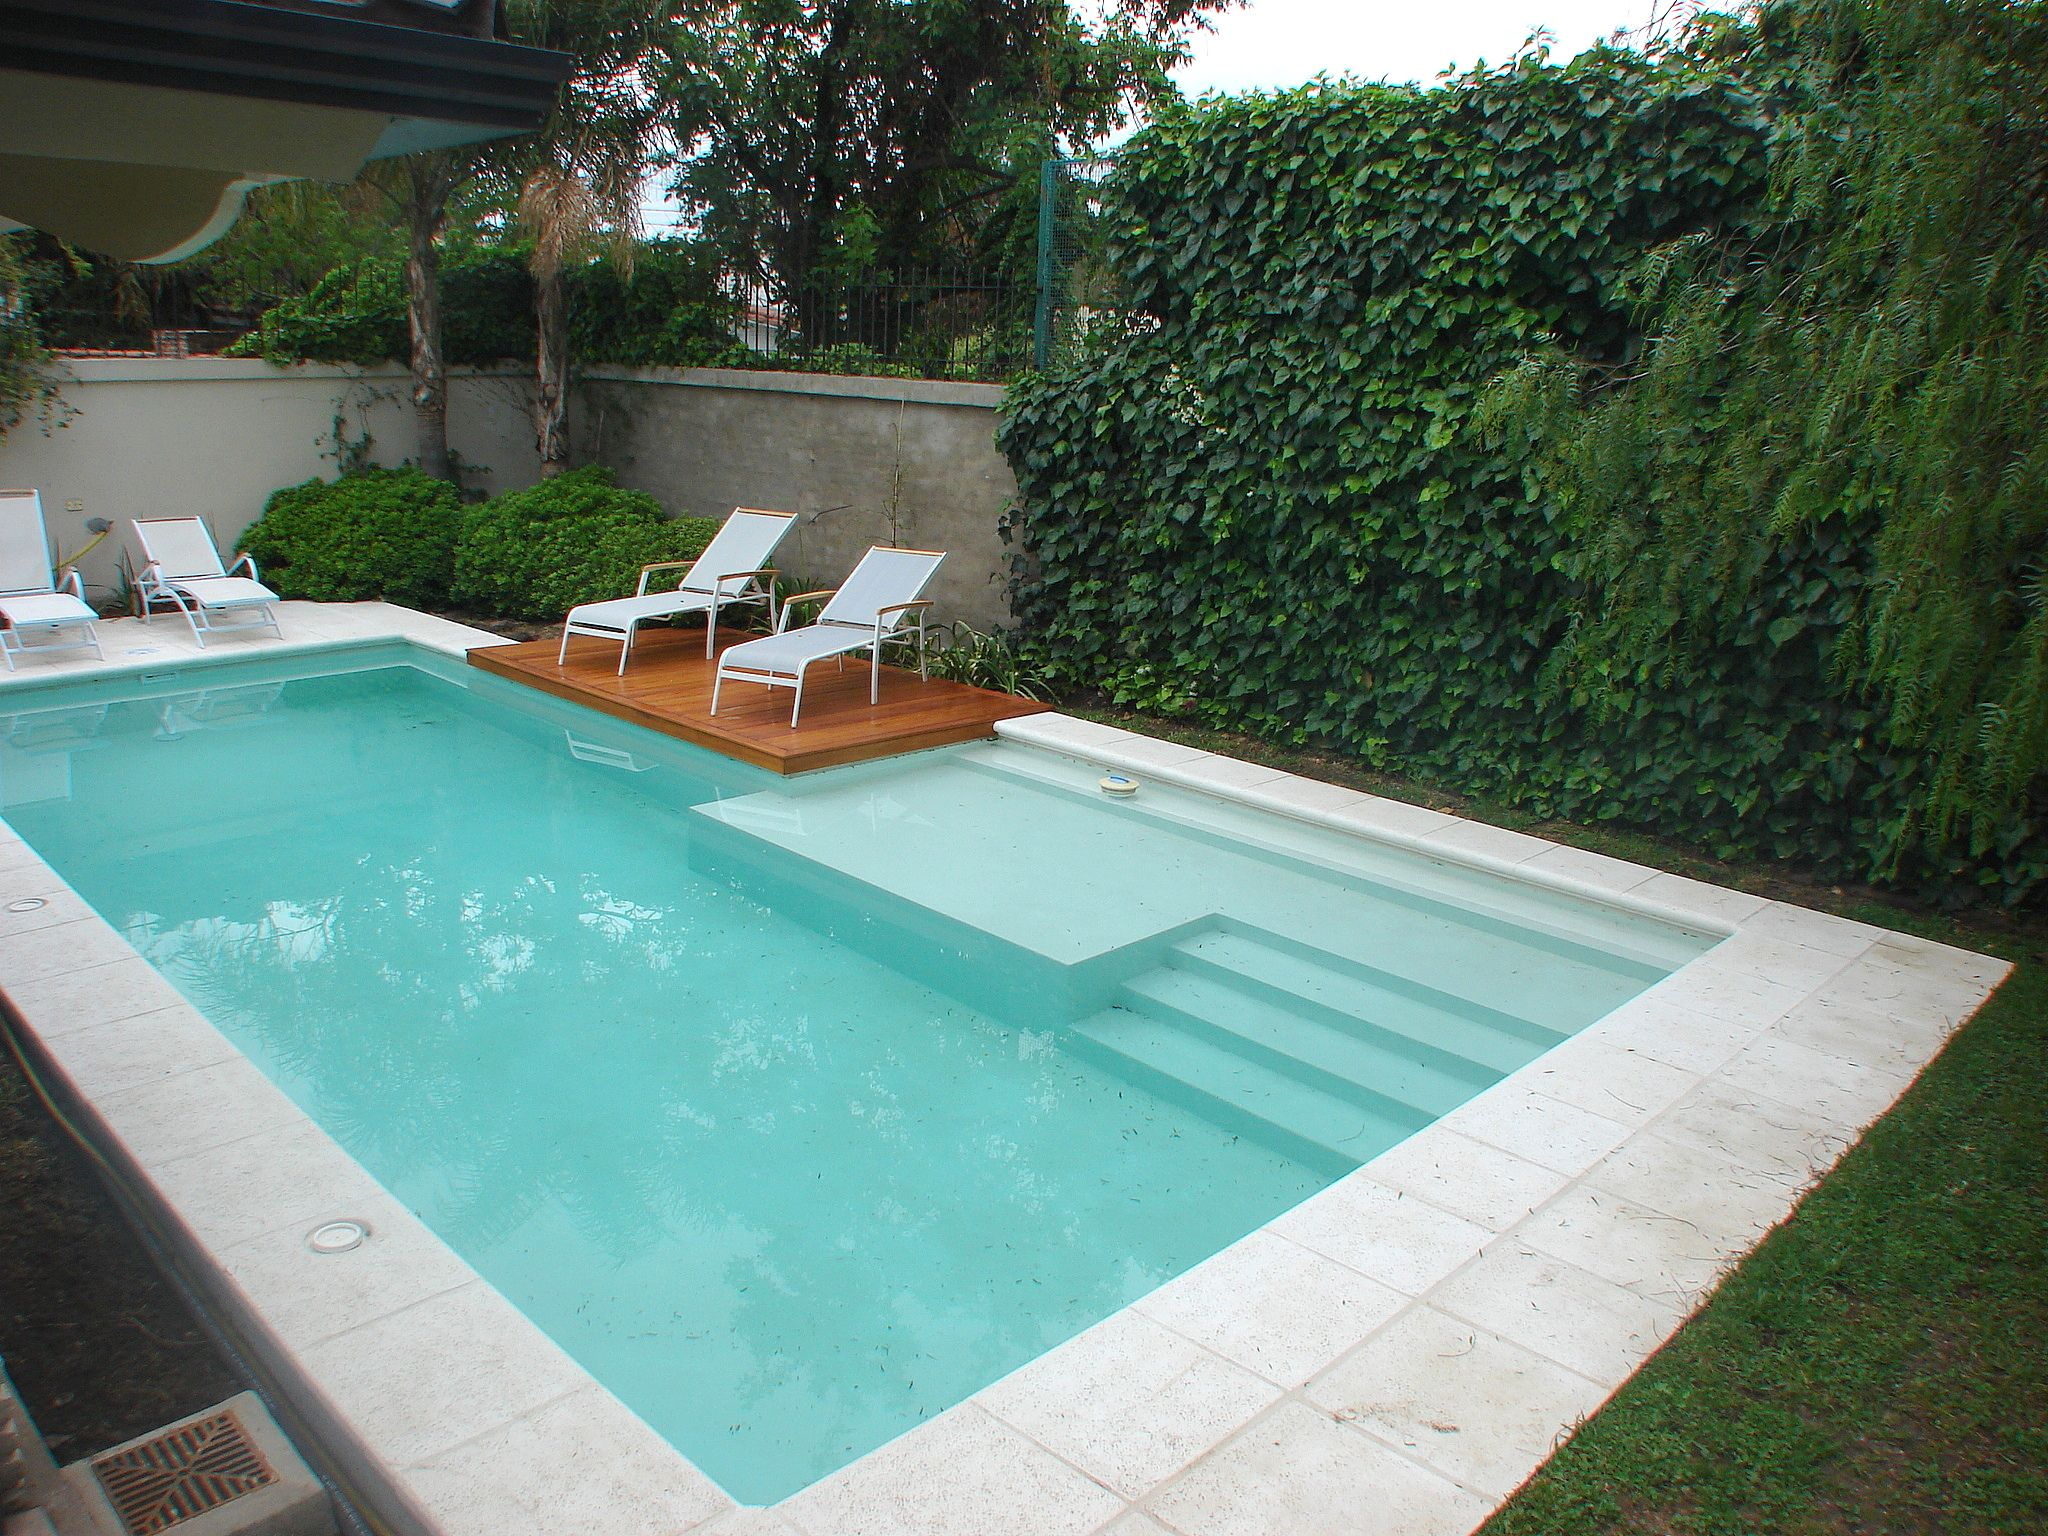 Piscina familiar swimmingpool deck de madera - Diseno de jardines con piscina ...